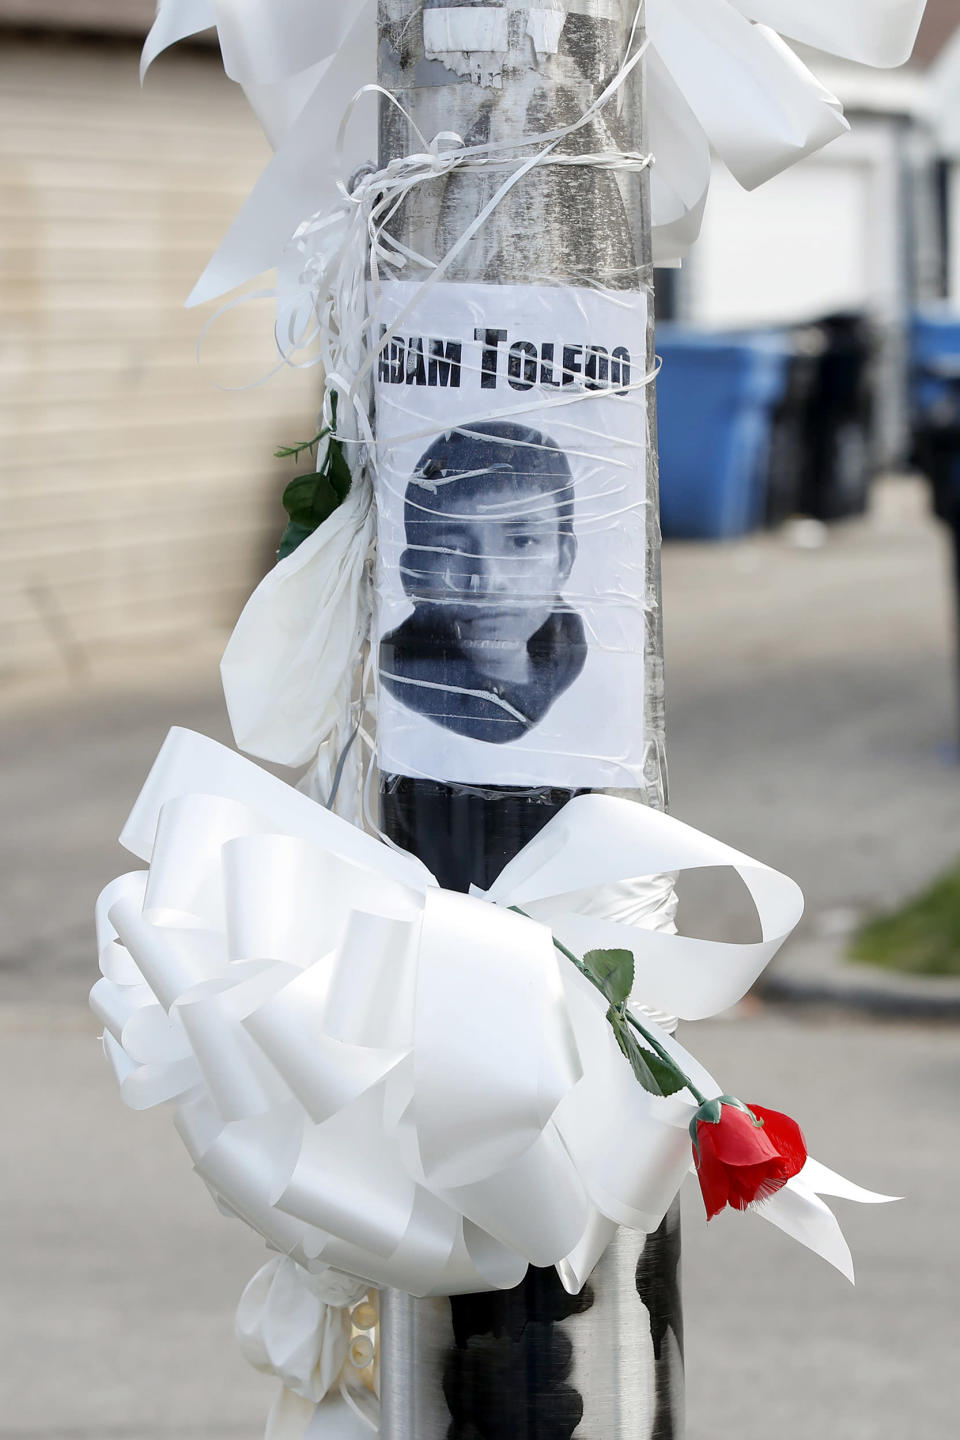 A small memorial where 13-year-old Adam Toledo was shot and killed by a Chicago police officer in the Little Village neighborhood (Kamil Krzaczynski / Getty Images)